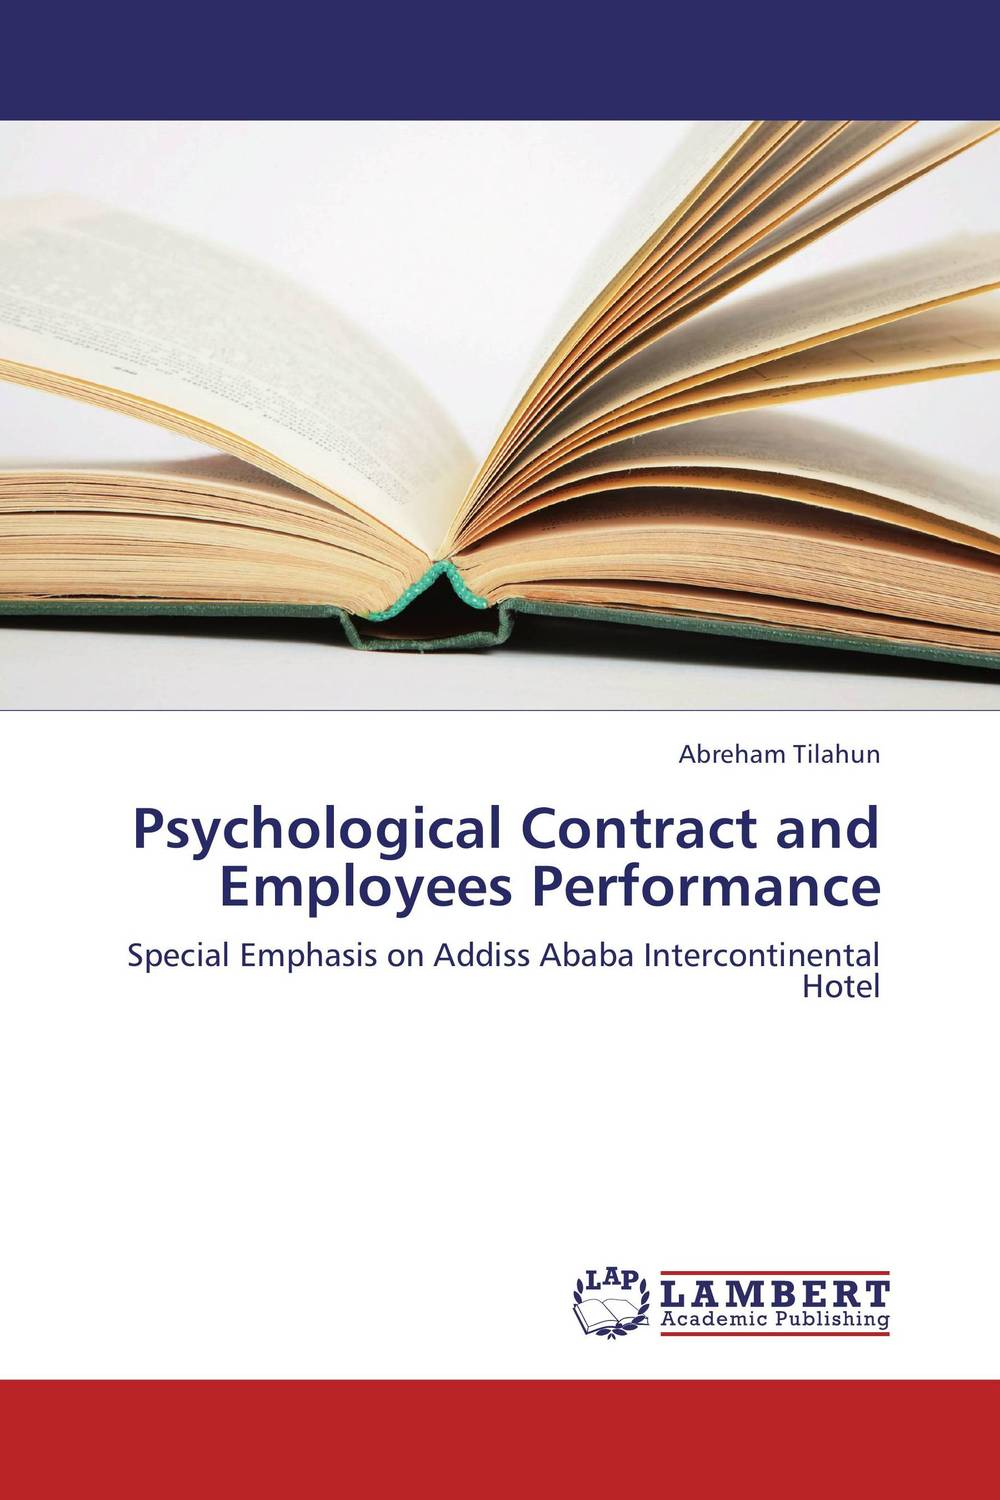 Psychological Contract and Employees Performance khaled el sayed hotel franchise agreements and the psychological contract